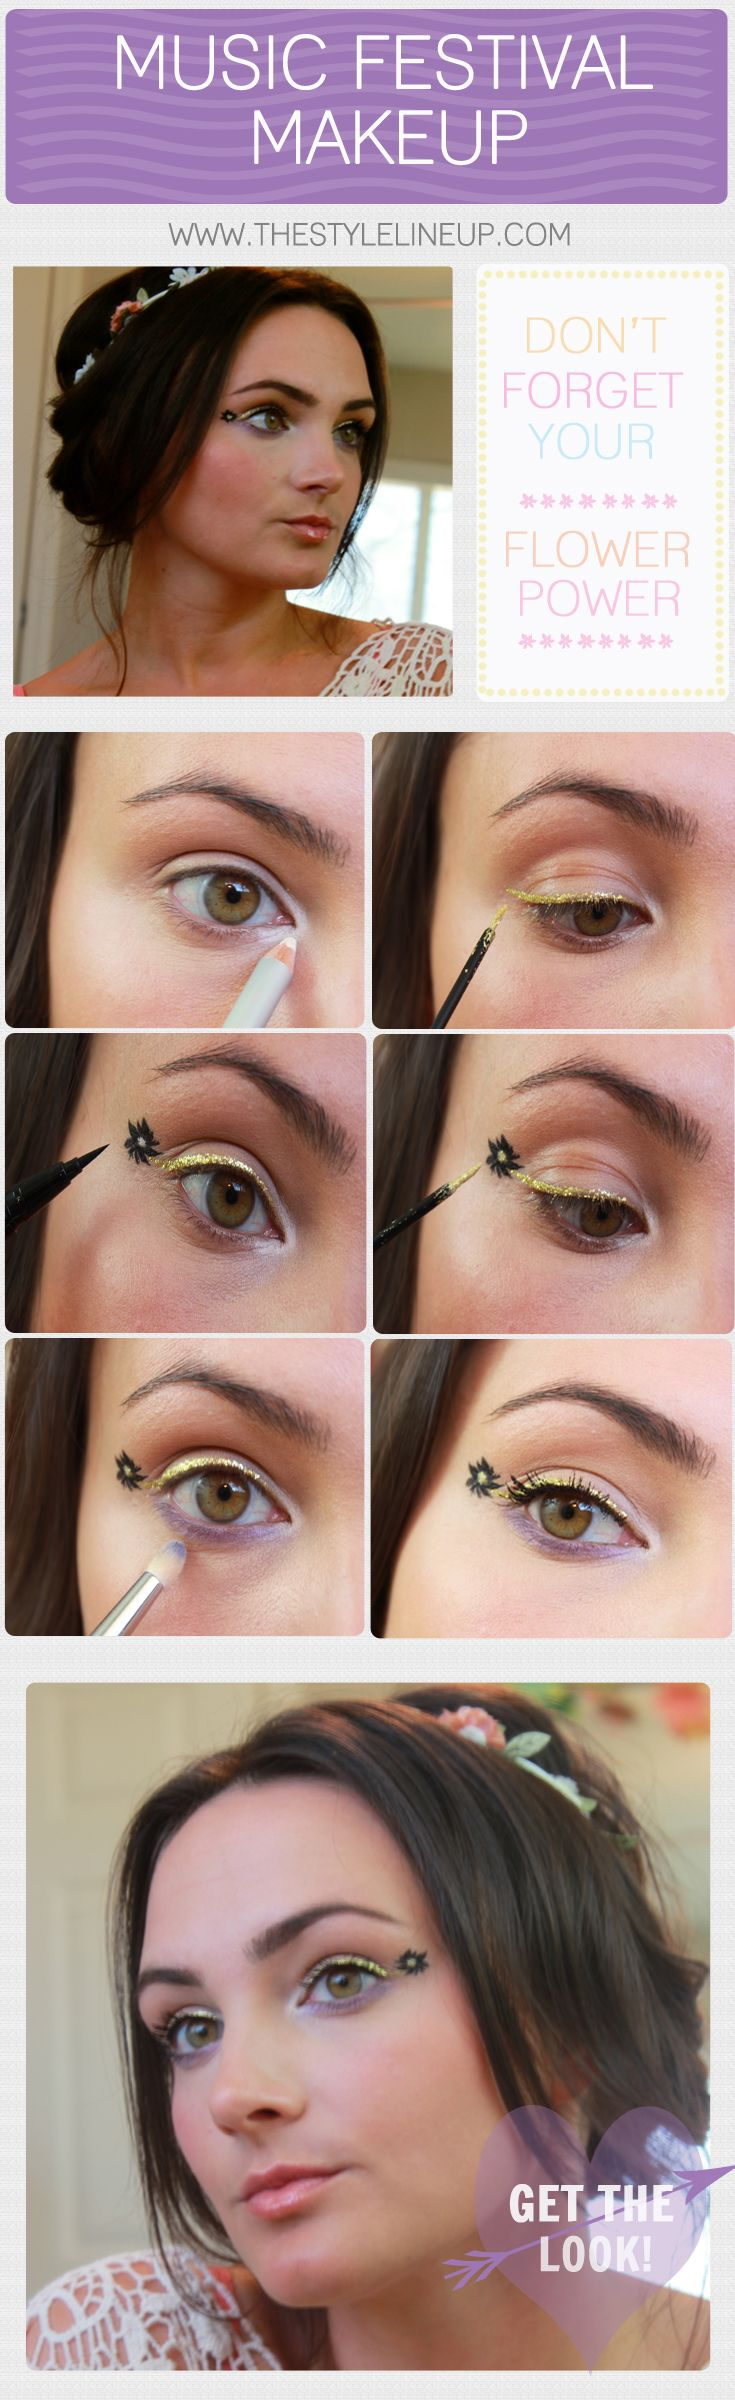 Music Festival Makeup - The Style Lineup - Festival Makeup - Hippie Makeup - Flower Power - Festival - Music - Makeup